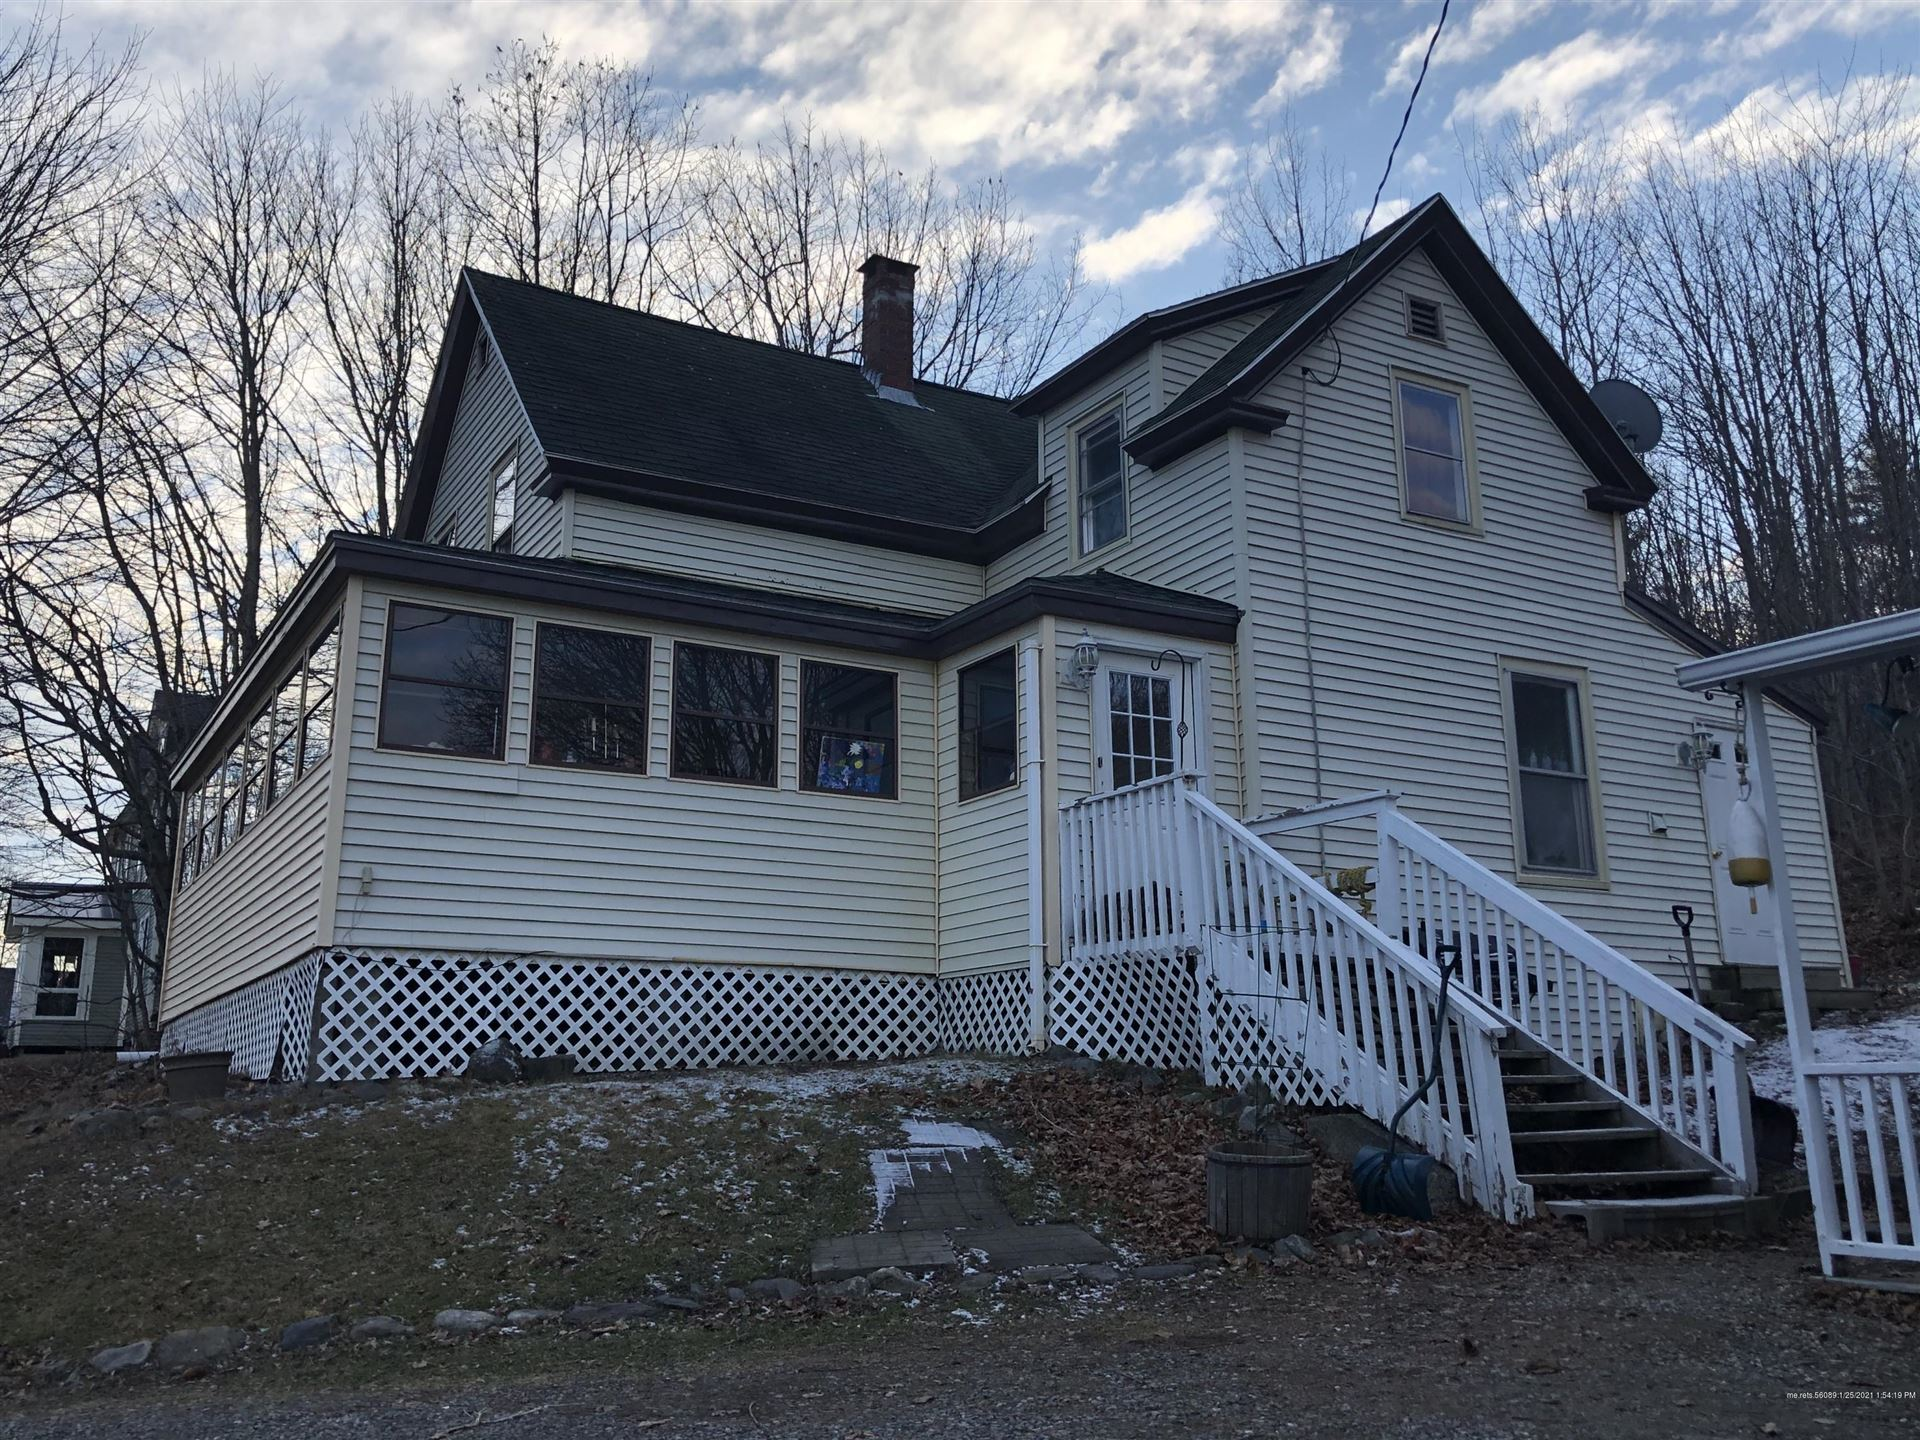 Photo of 1033 Commercial Street, Rockport, ME 04856 (MLS # 1480521)